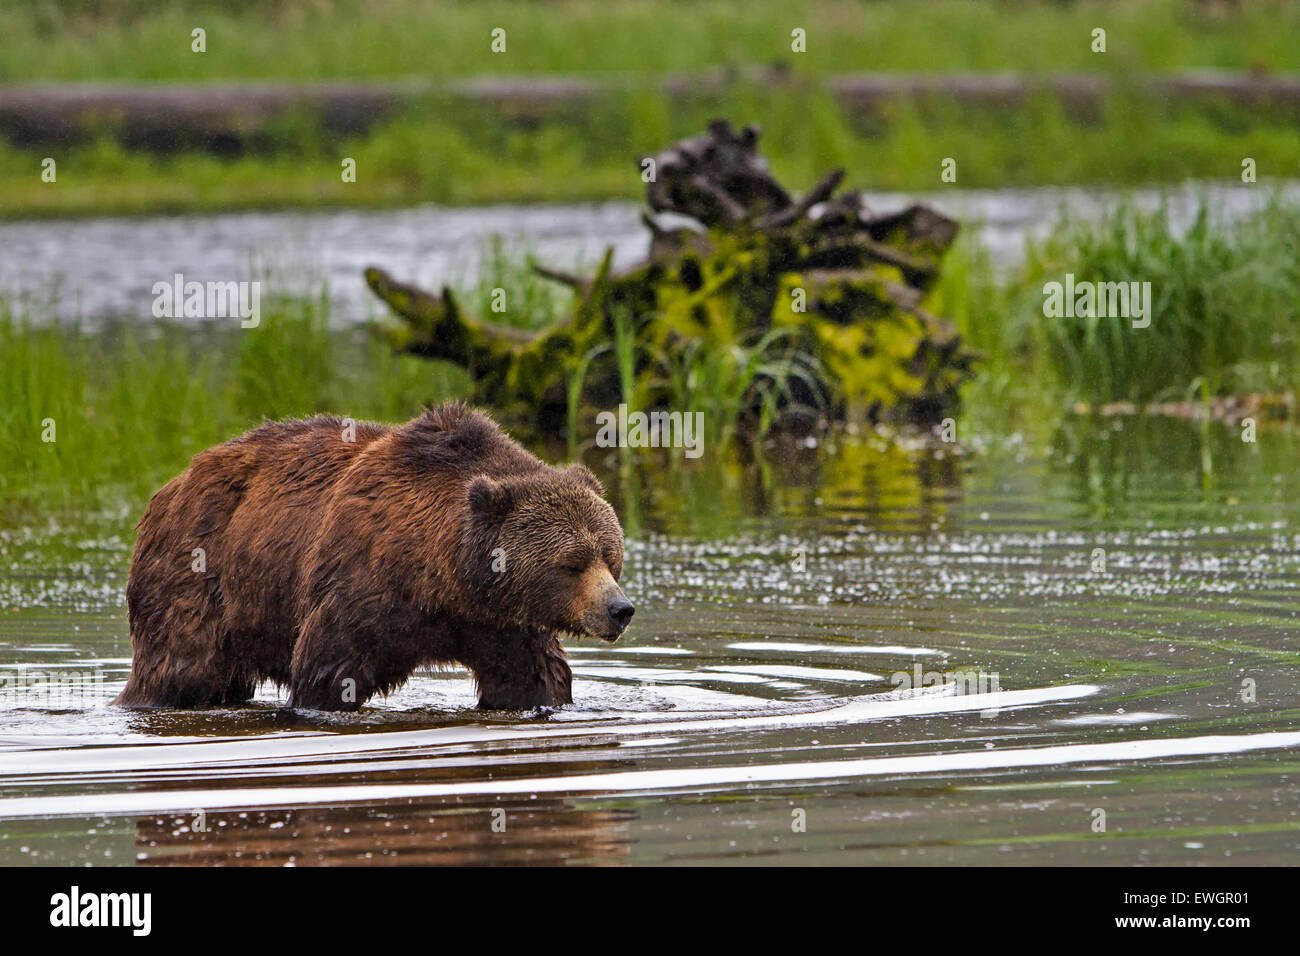 Coastal Grizzly bear searching for food at low tide on the British Columbia Mainland, Canada - Stock Image